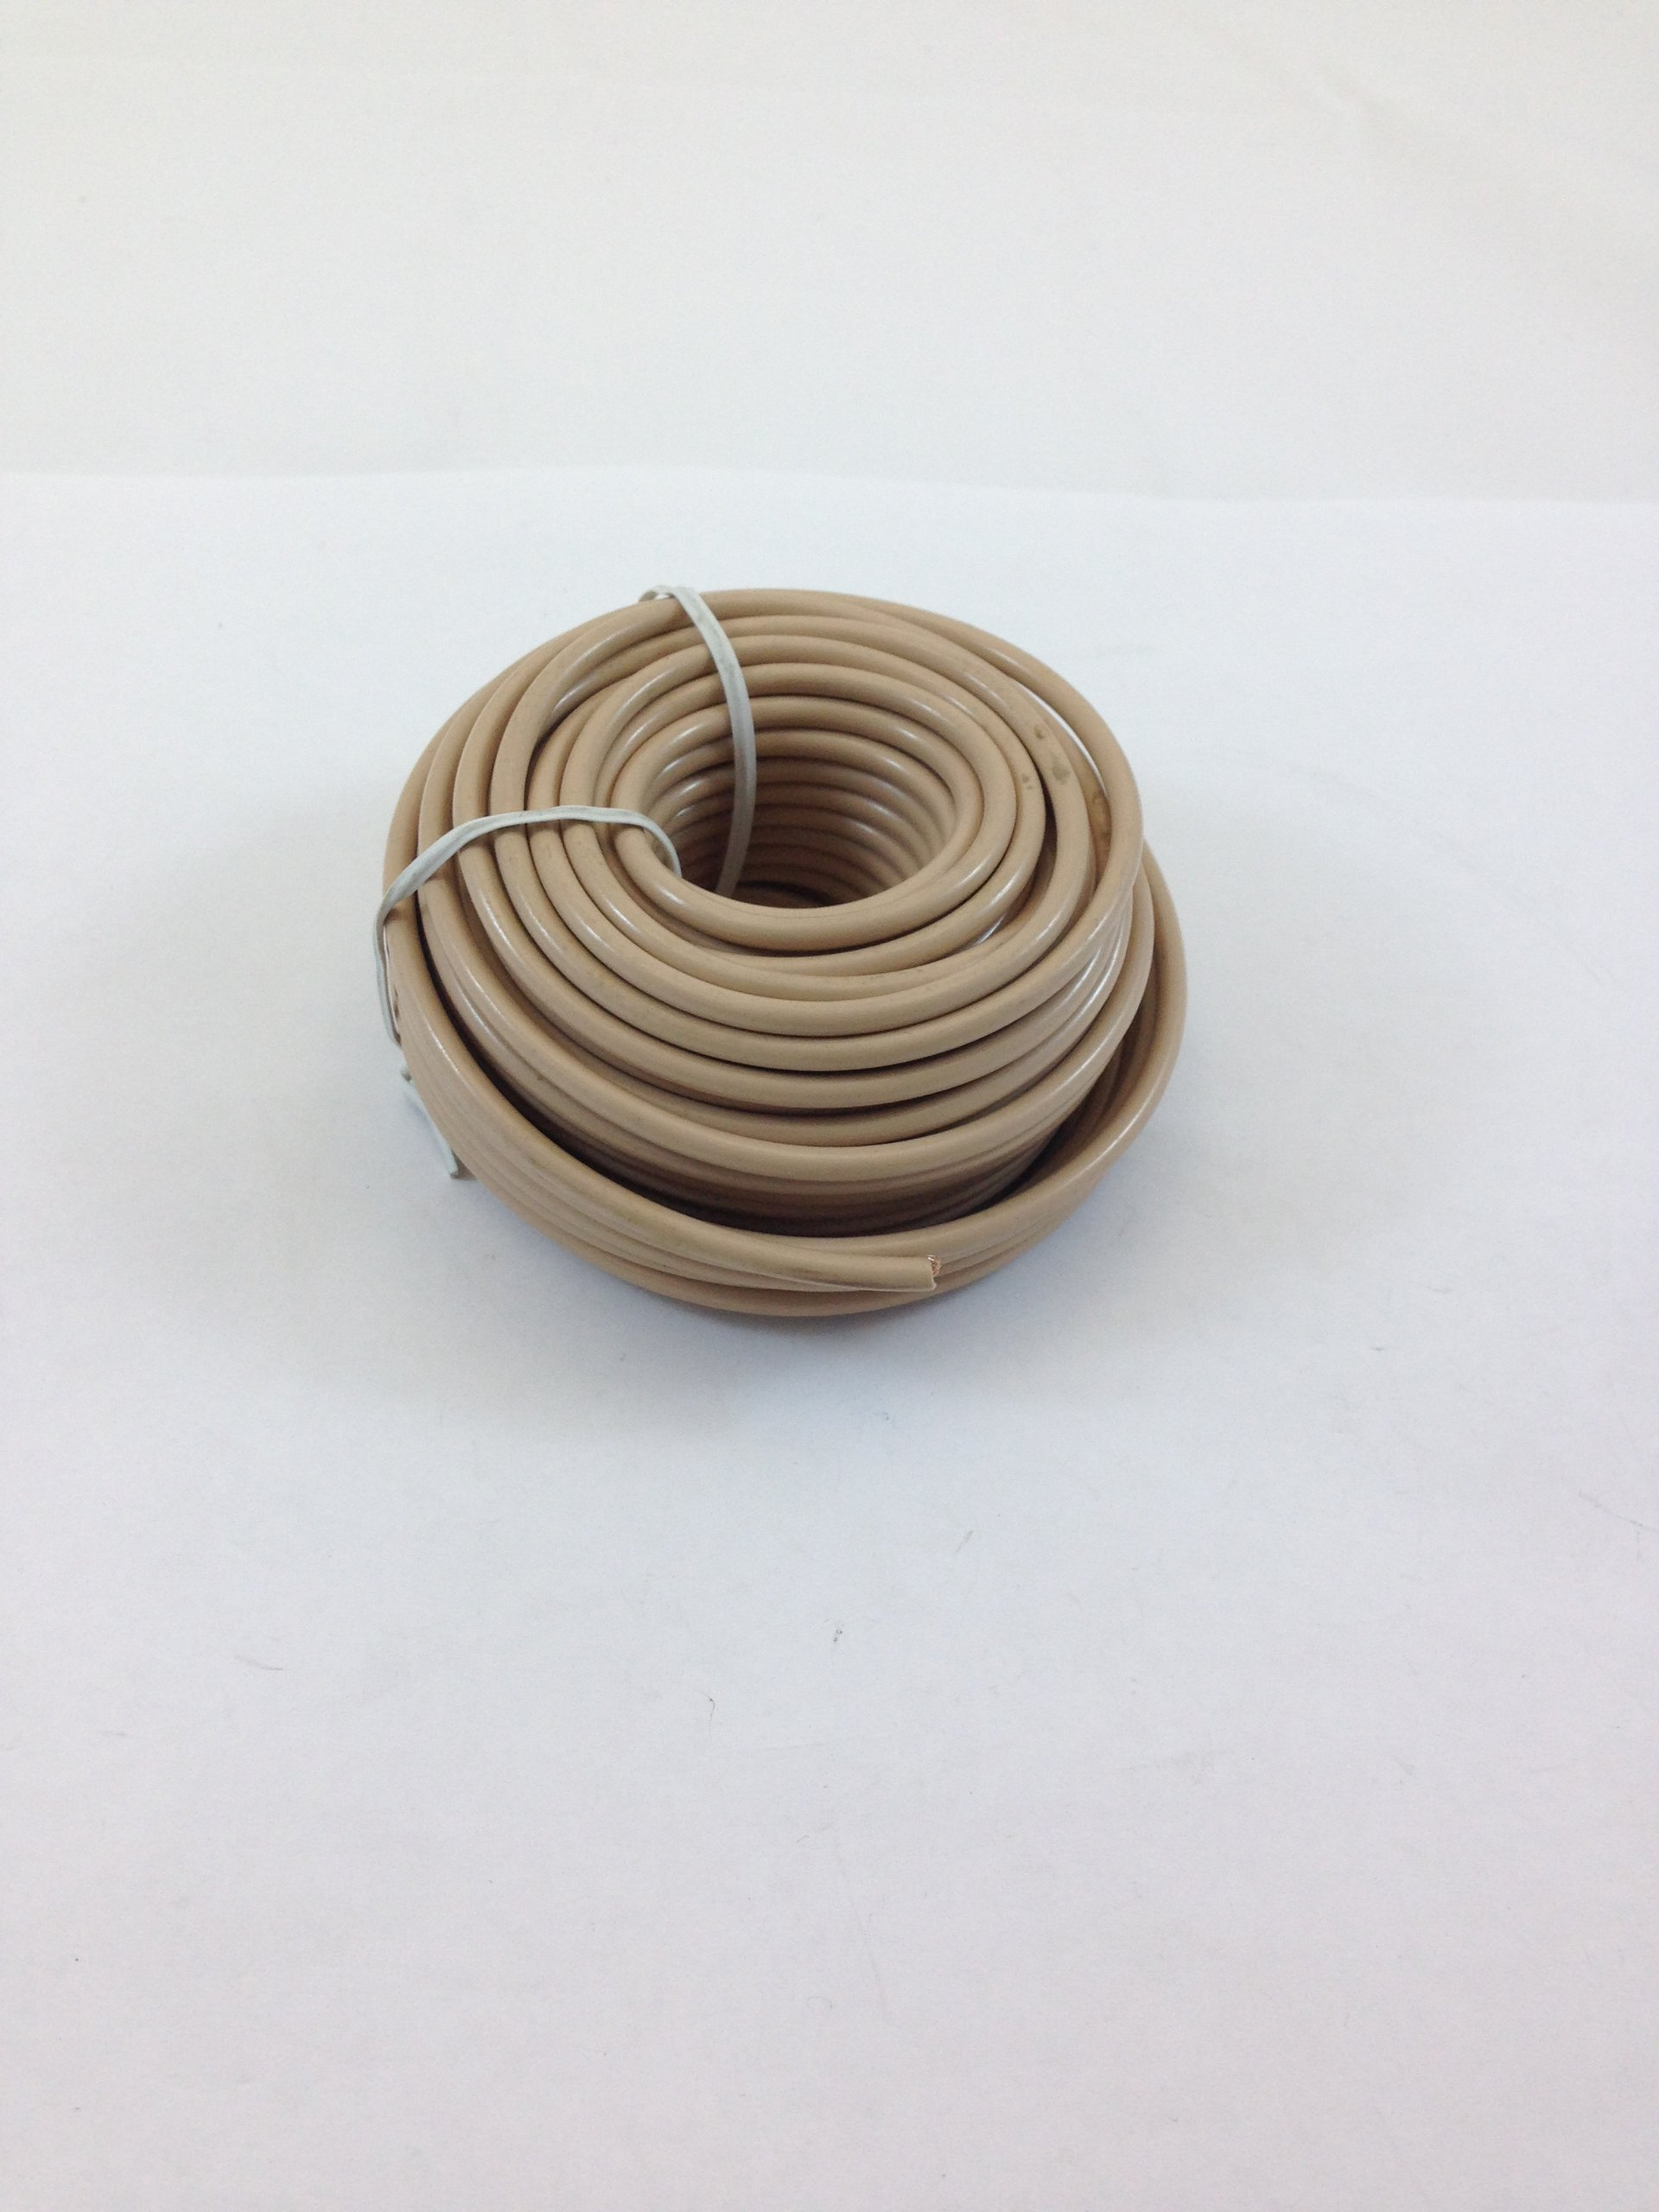 50' TELEPHONE STATION WIRE 24AWG 4 CONDUCTOR STRANDED, TAN PVC JACKET, 100% COOPER WIRE